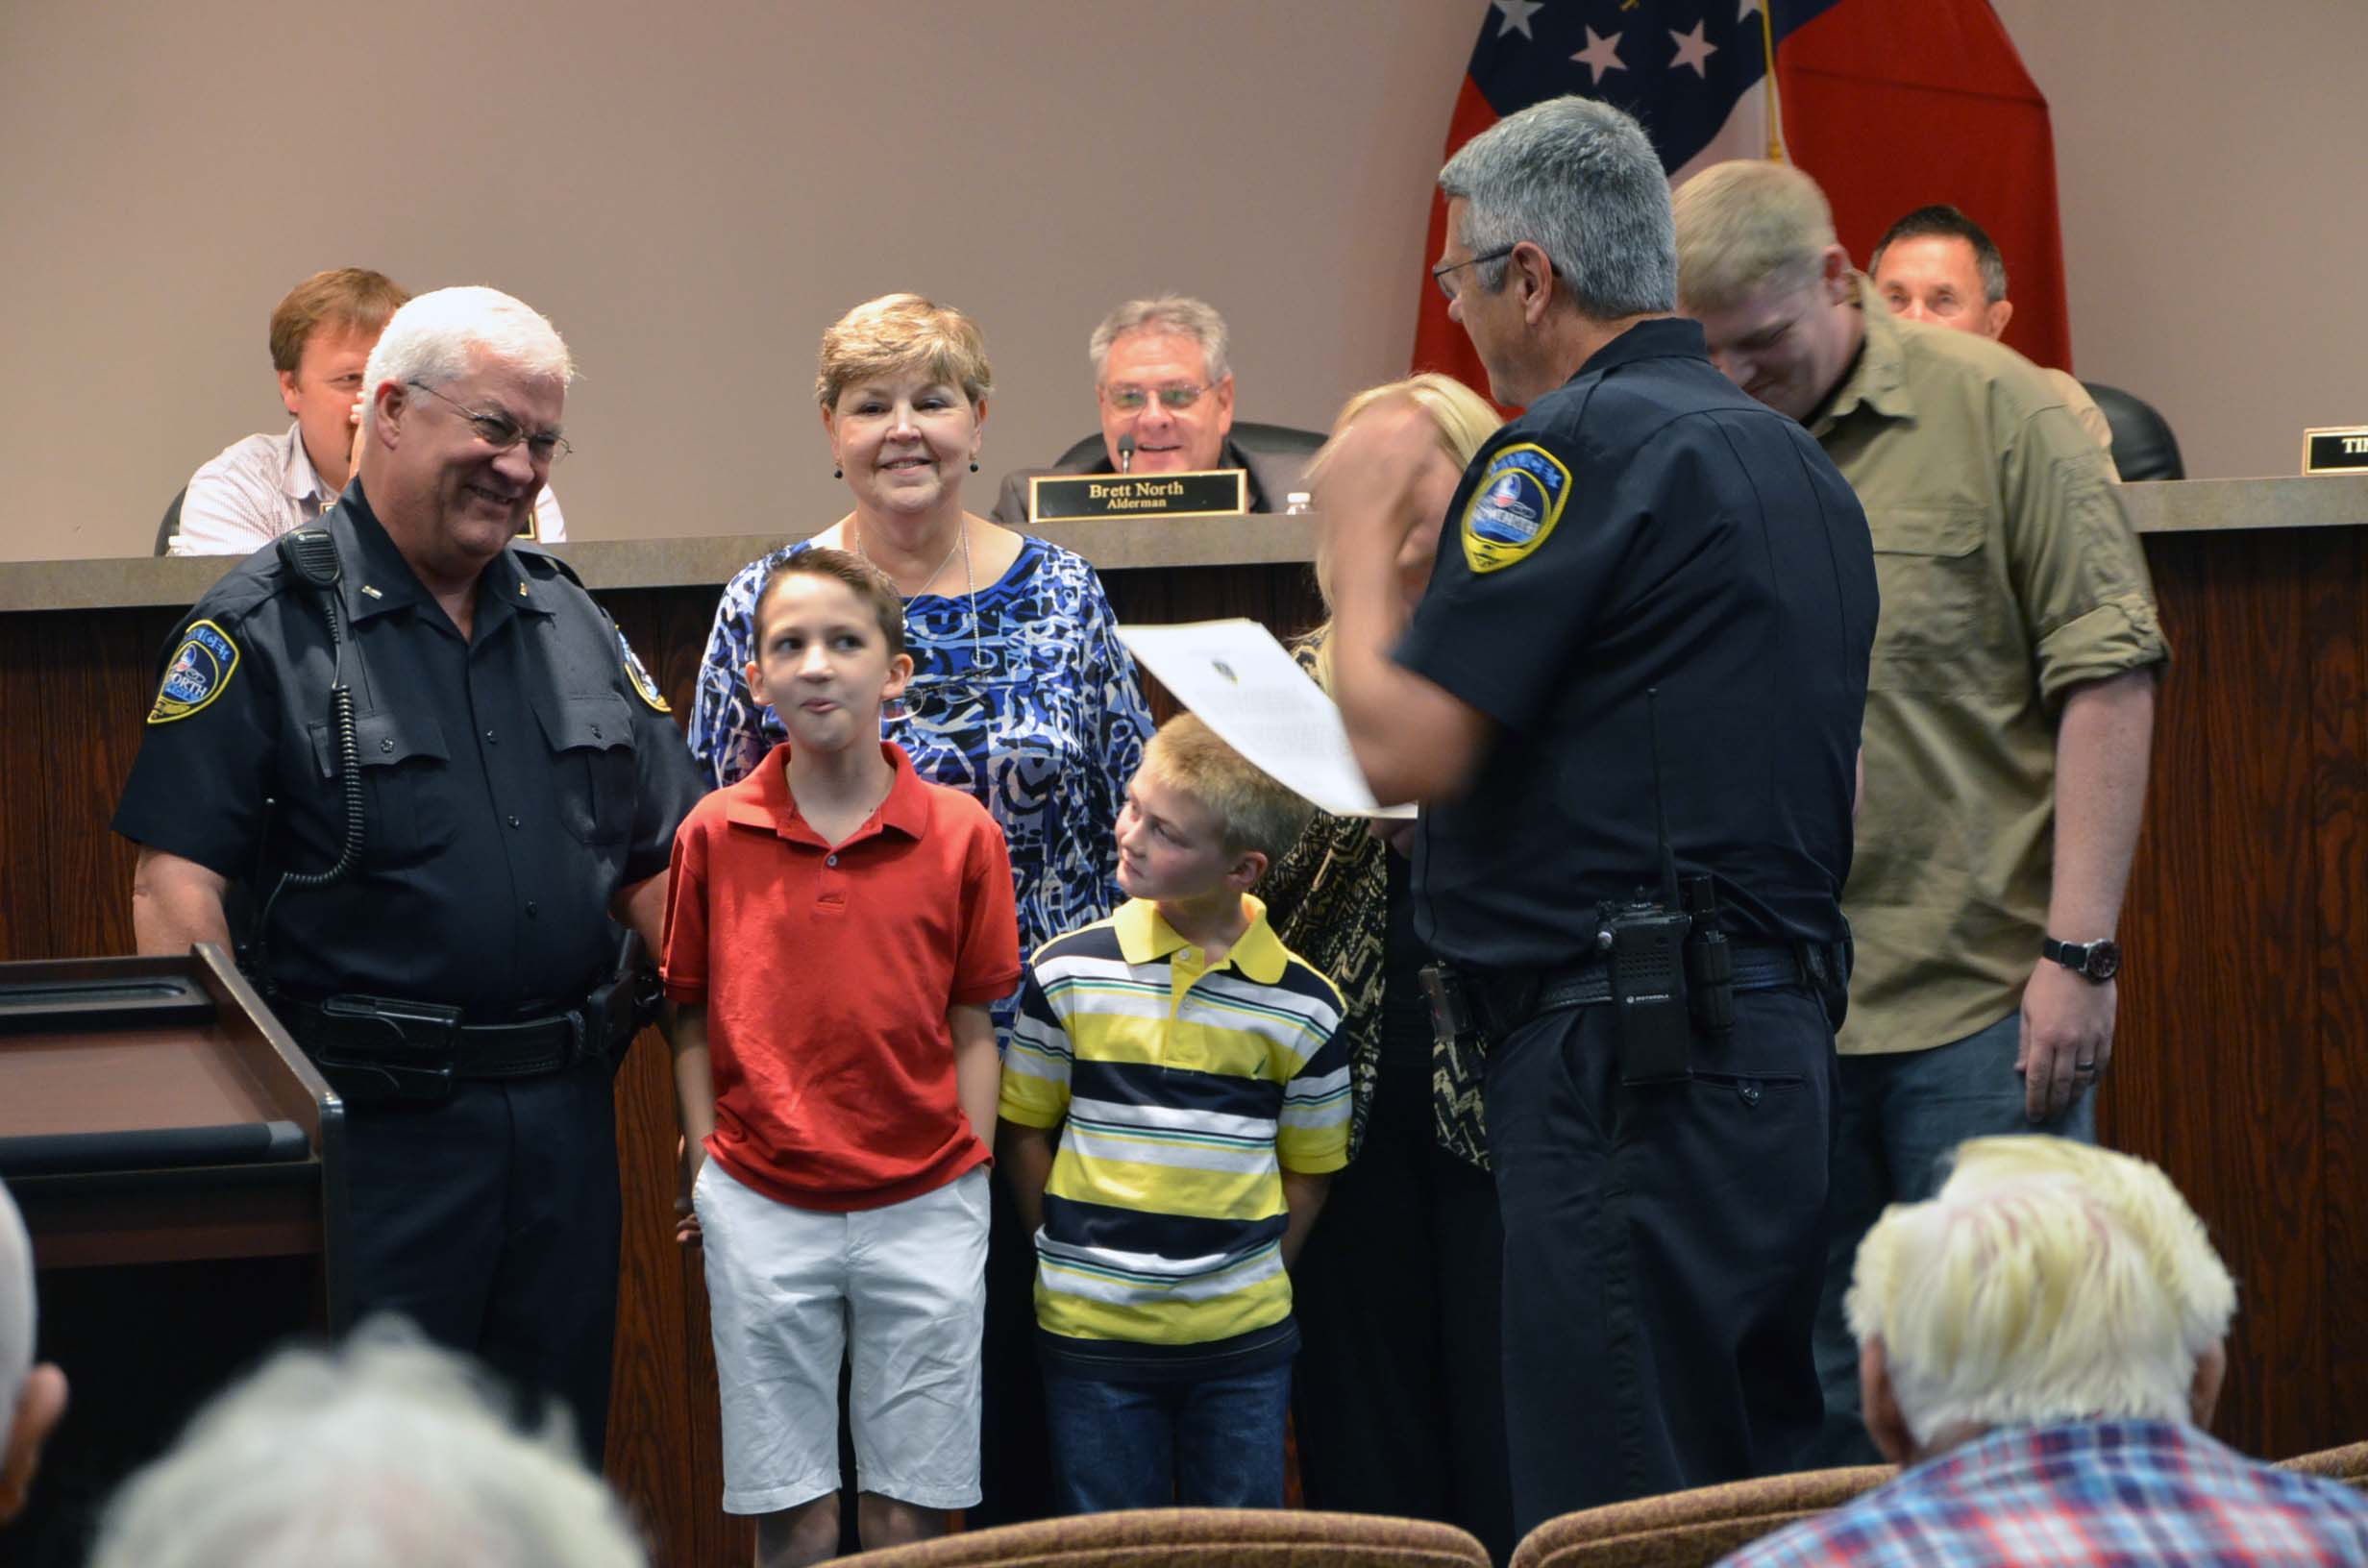 Oath of Office to Rank of Lieutenant for Kenny King 2